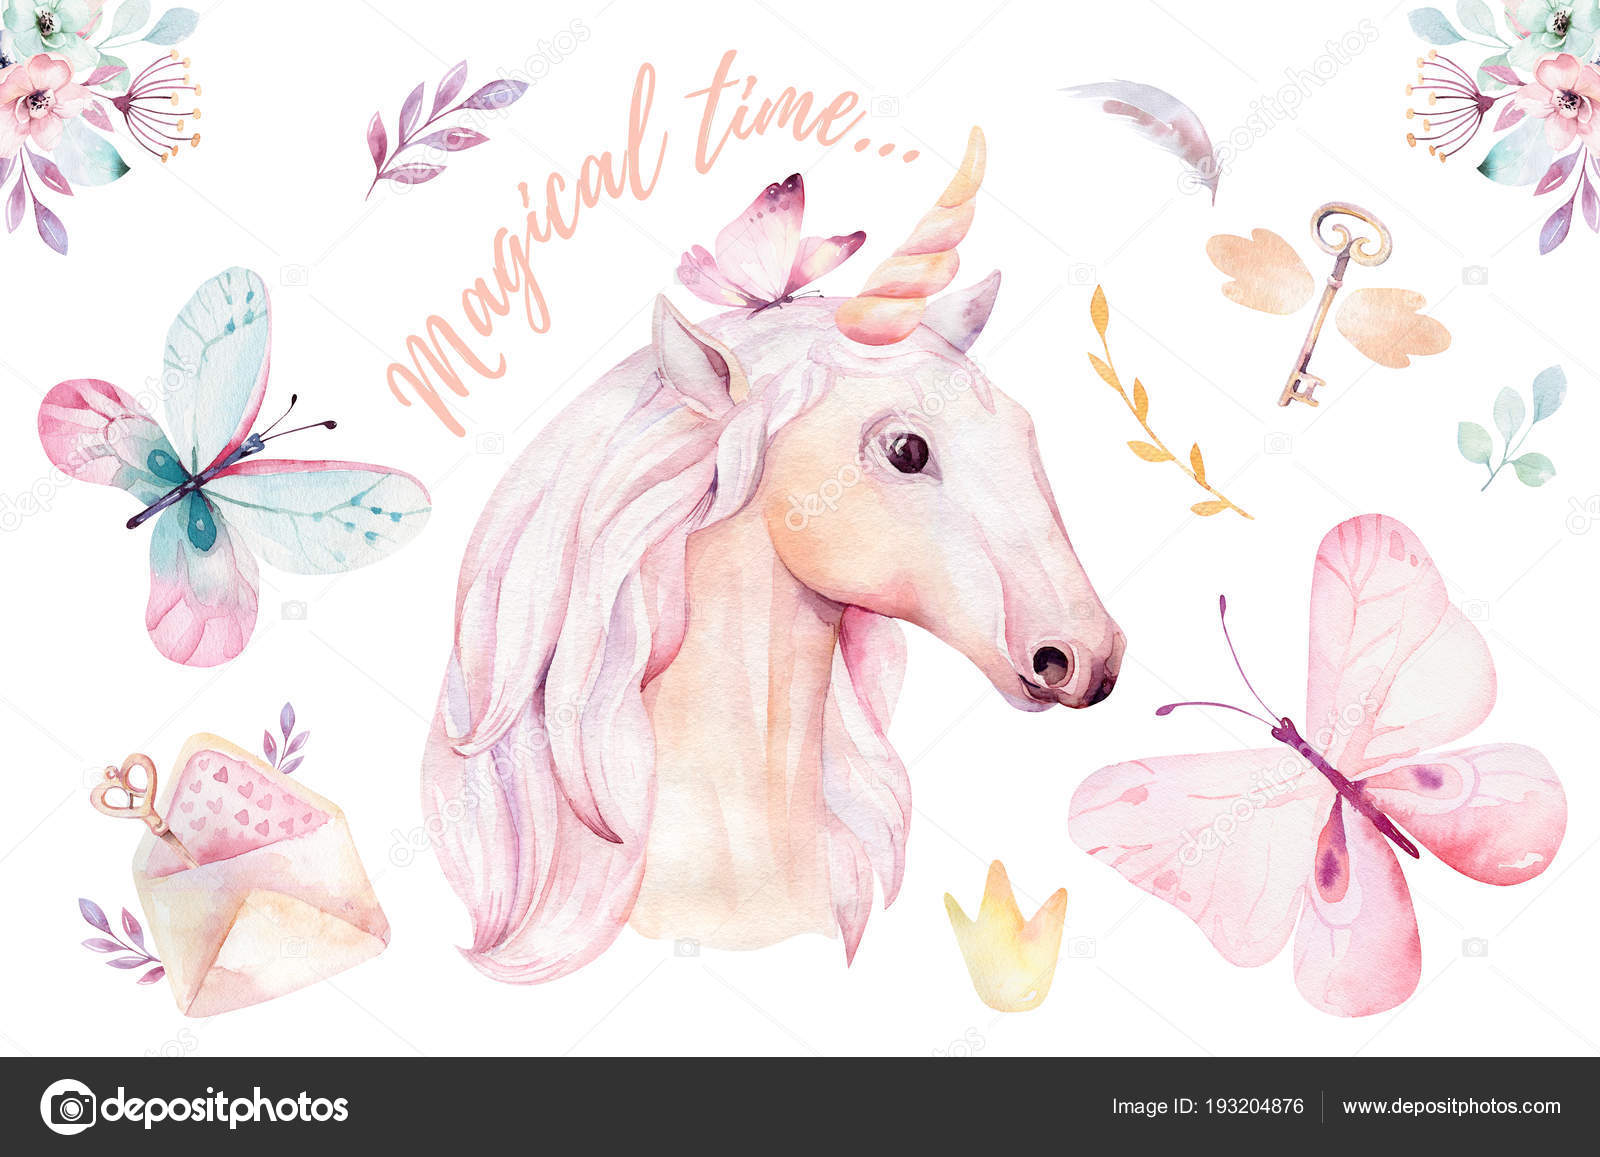 Isolated Cute Watercolor Unicorn Clipart Floral Details